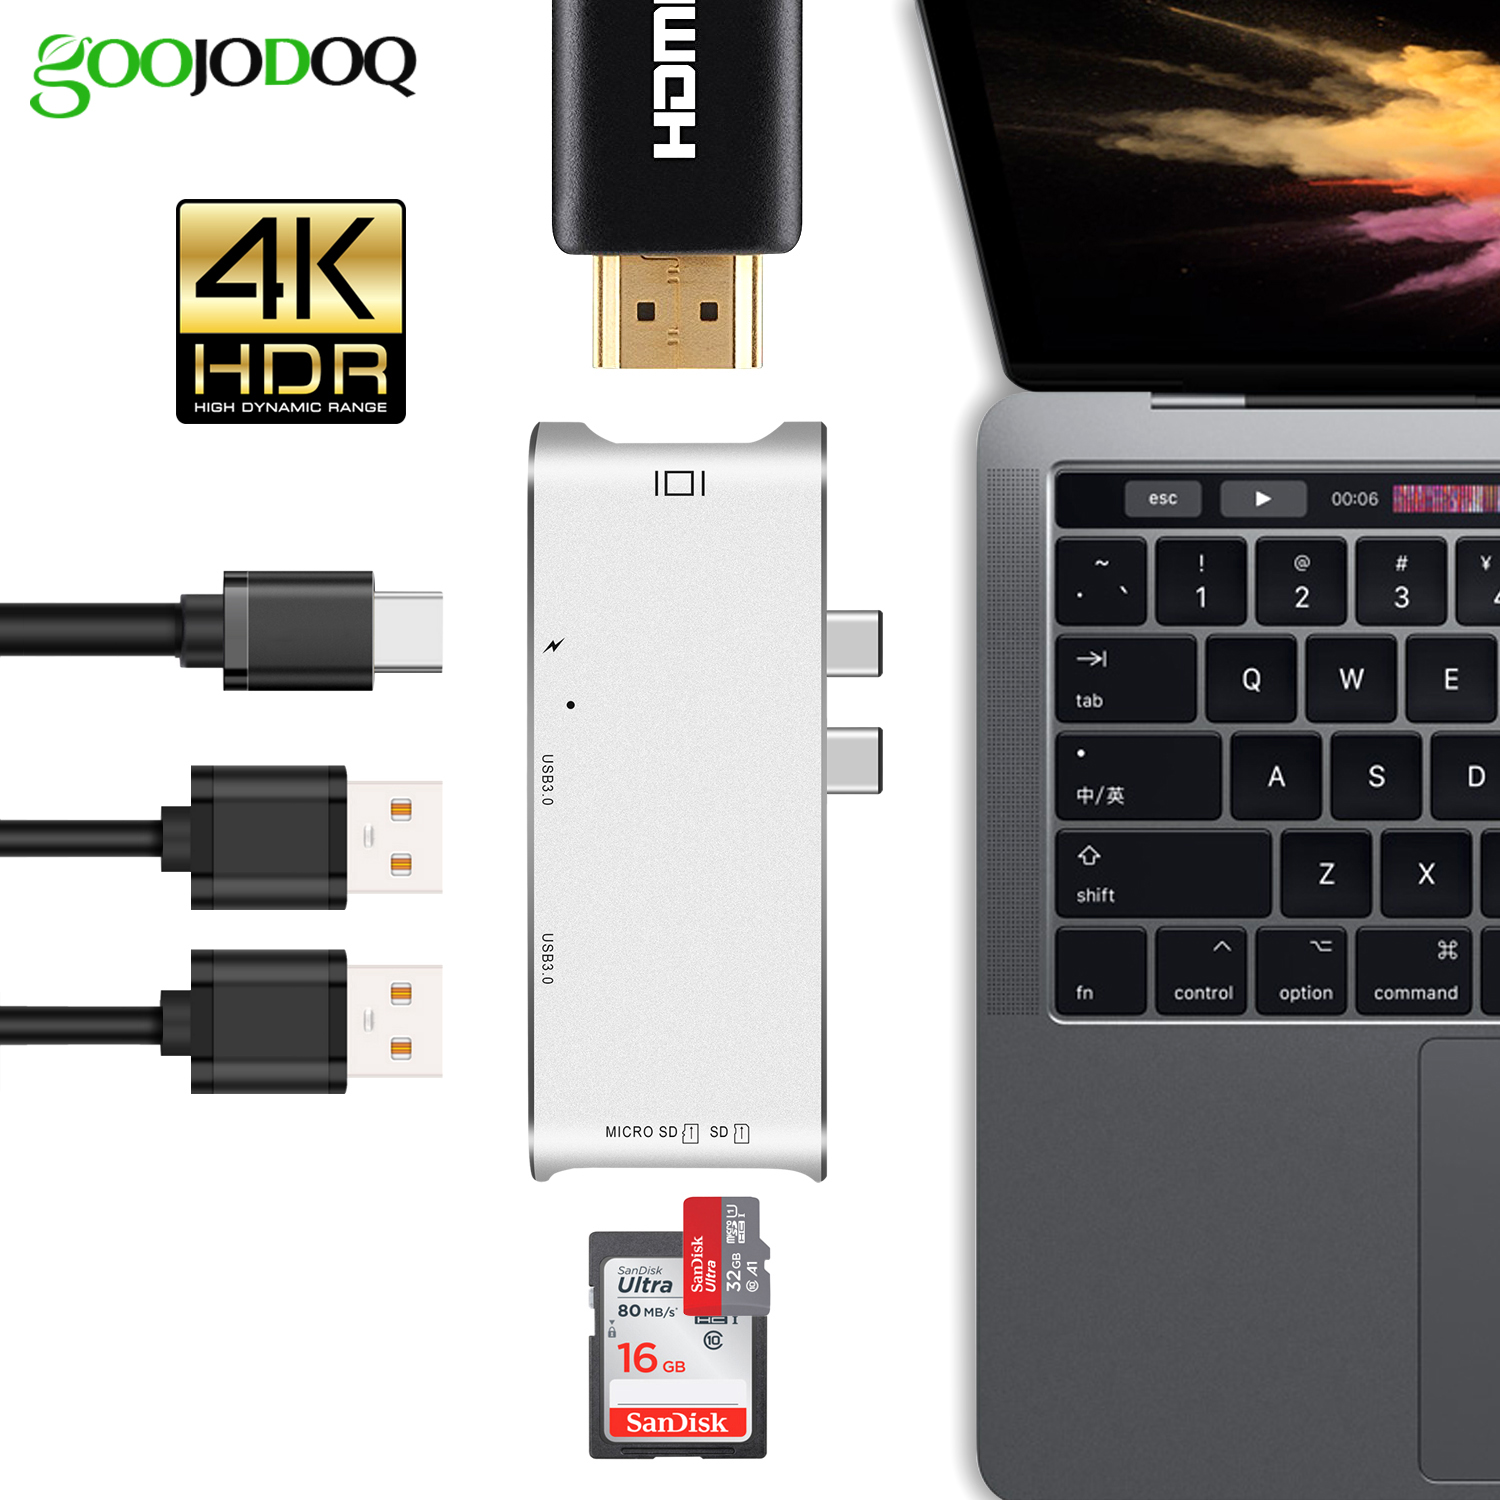 USB C HUB HDMI for MacBook Pro Hub Adapter, thunderbolt 3 USB-C HDMI USB 3.1 SD/TF Card Reader+ Type-C Power Delivery Type C Hub doitop usb c hub multiport type c hub adapter converter with 2 usb 3 0 ports type c charging port sd tf card reader for macbook